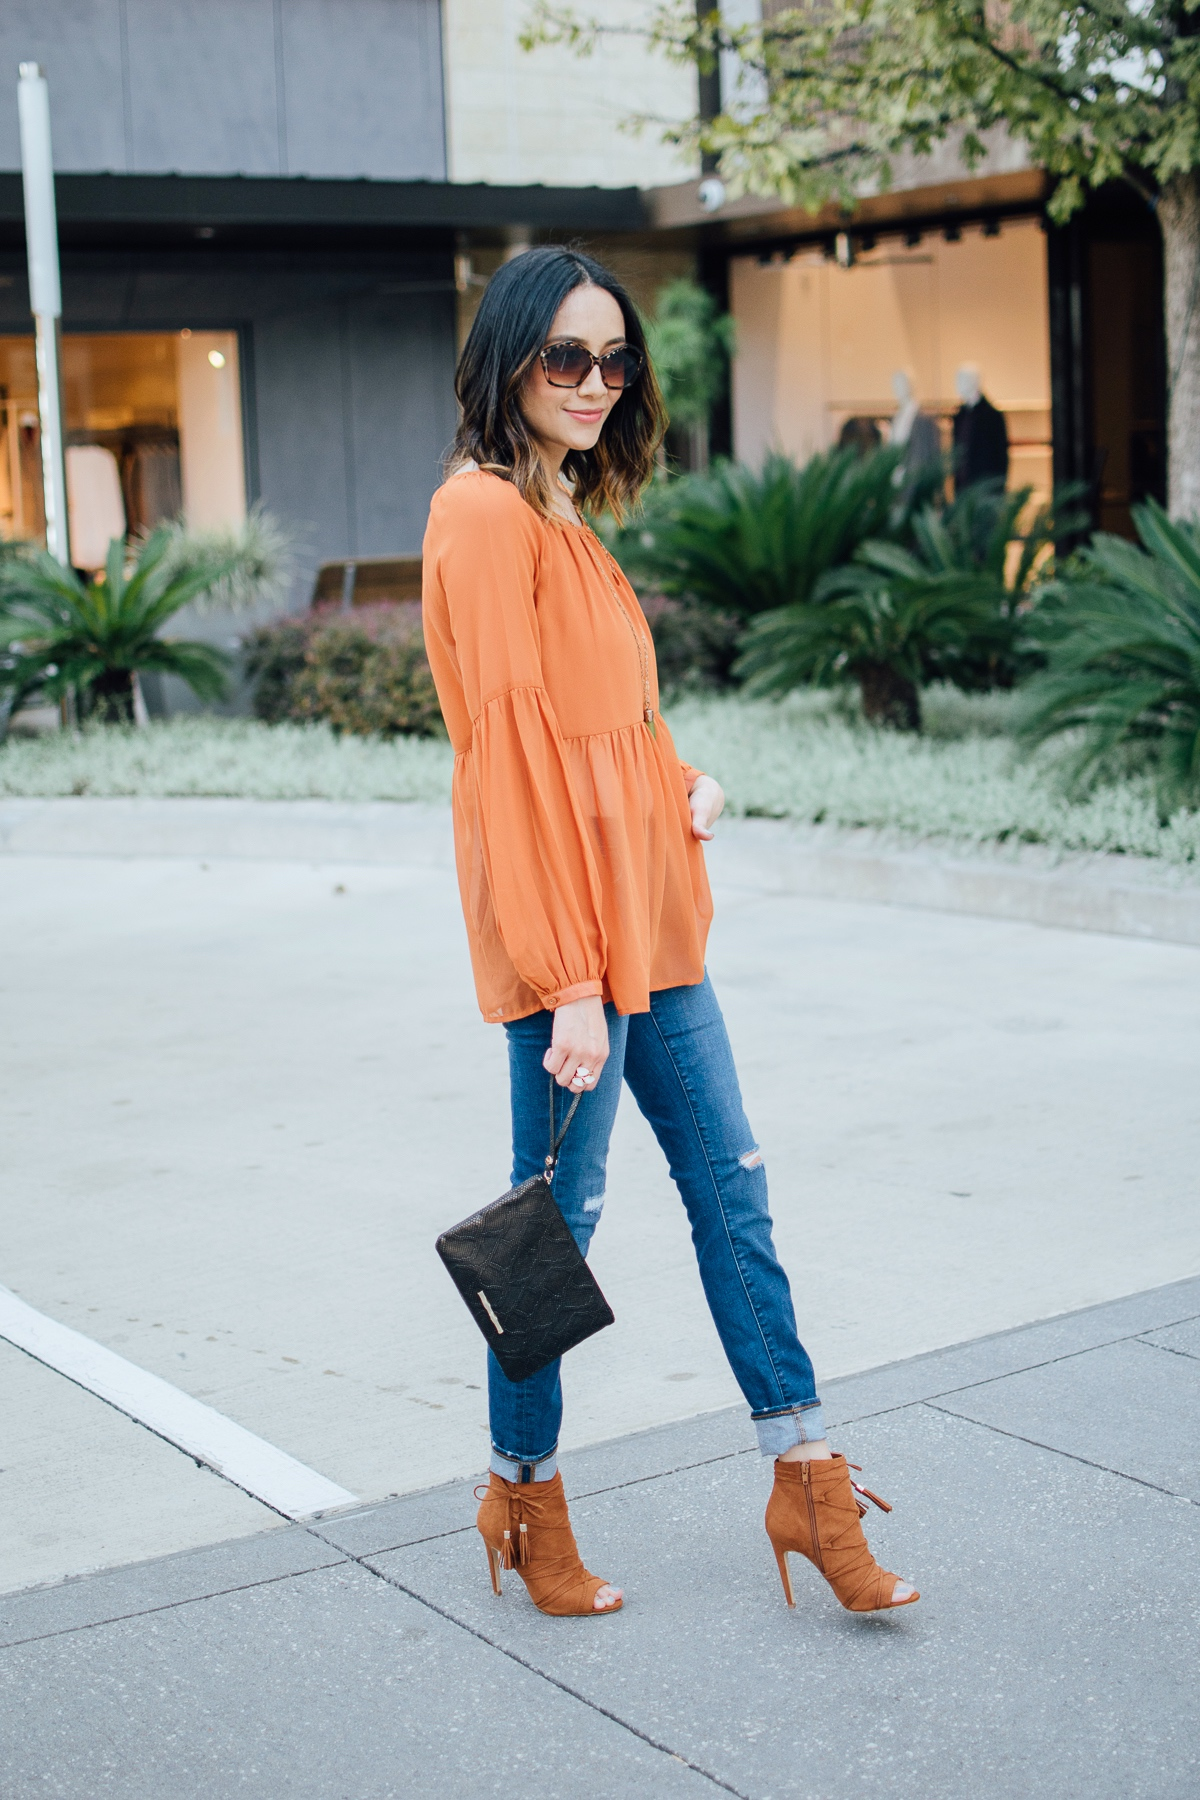 Fashion blogger Lilly Beltran of Daily Craving in a casual fall look in an orange top and black Elaine Turner Clutch